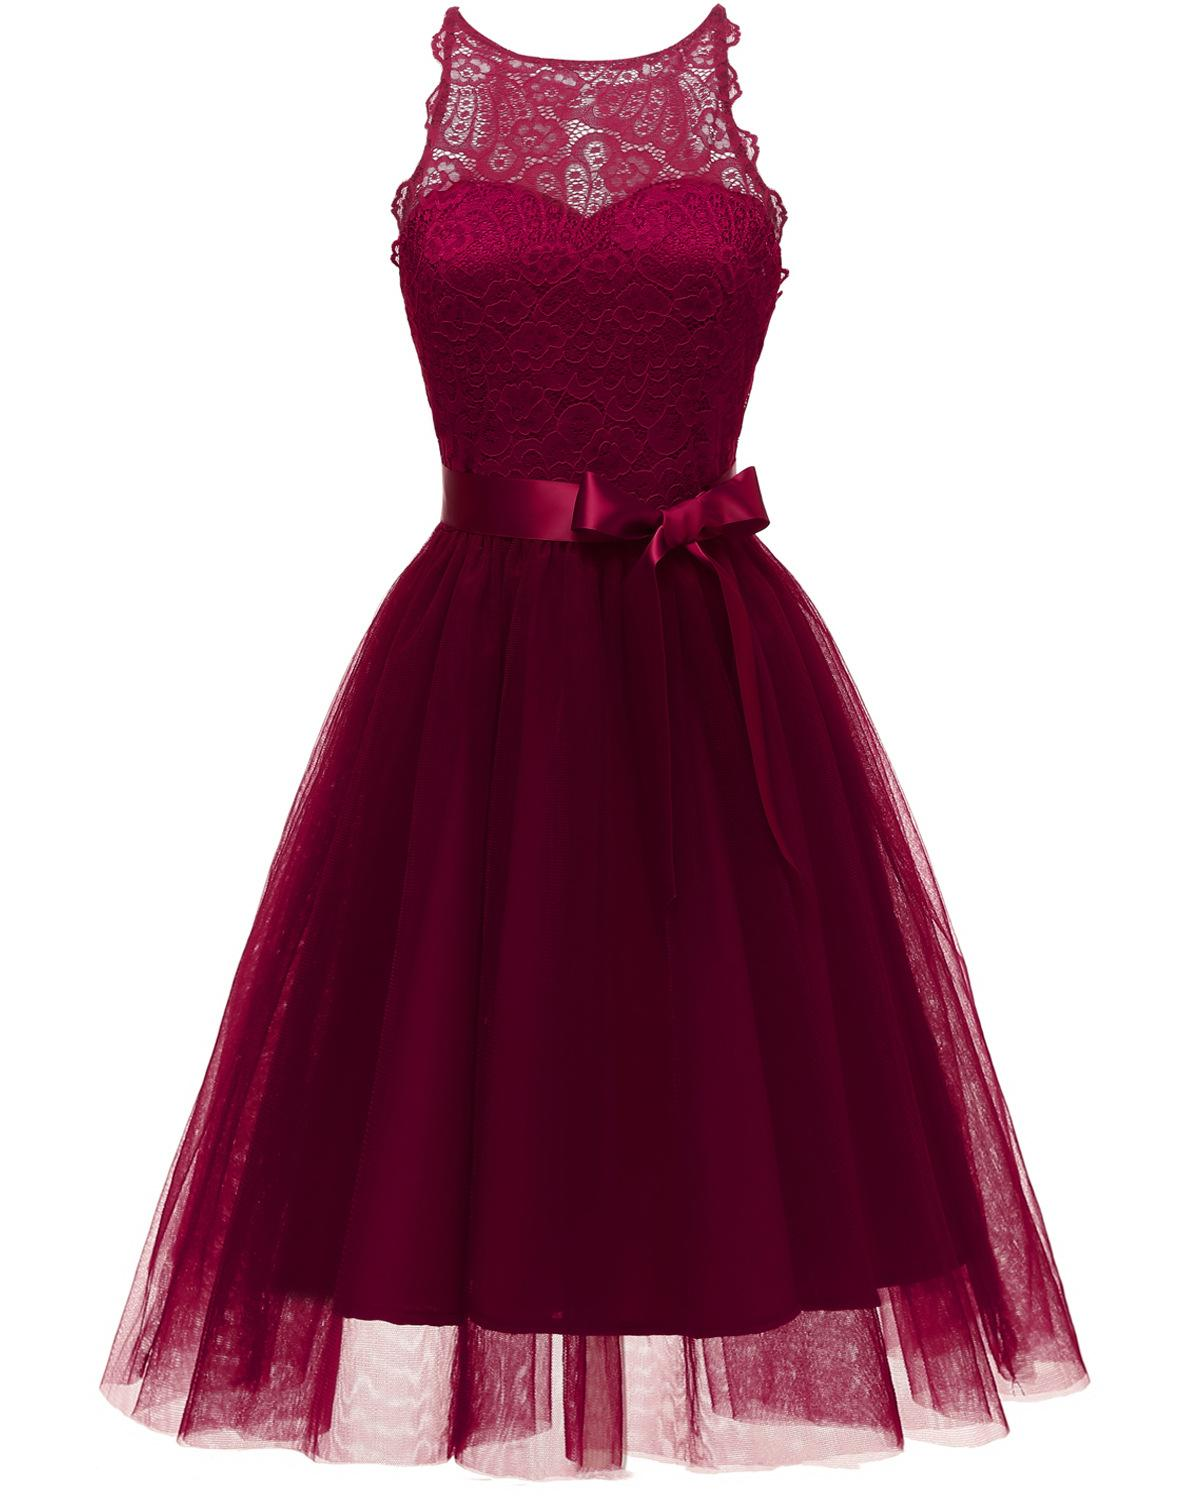 Halter Burgundy Lace Tulle   Cocktail     Dresses   With Bow vestidos elegant Short Formal   Dress   party 2019 Homecoming   Dress